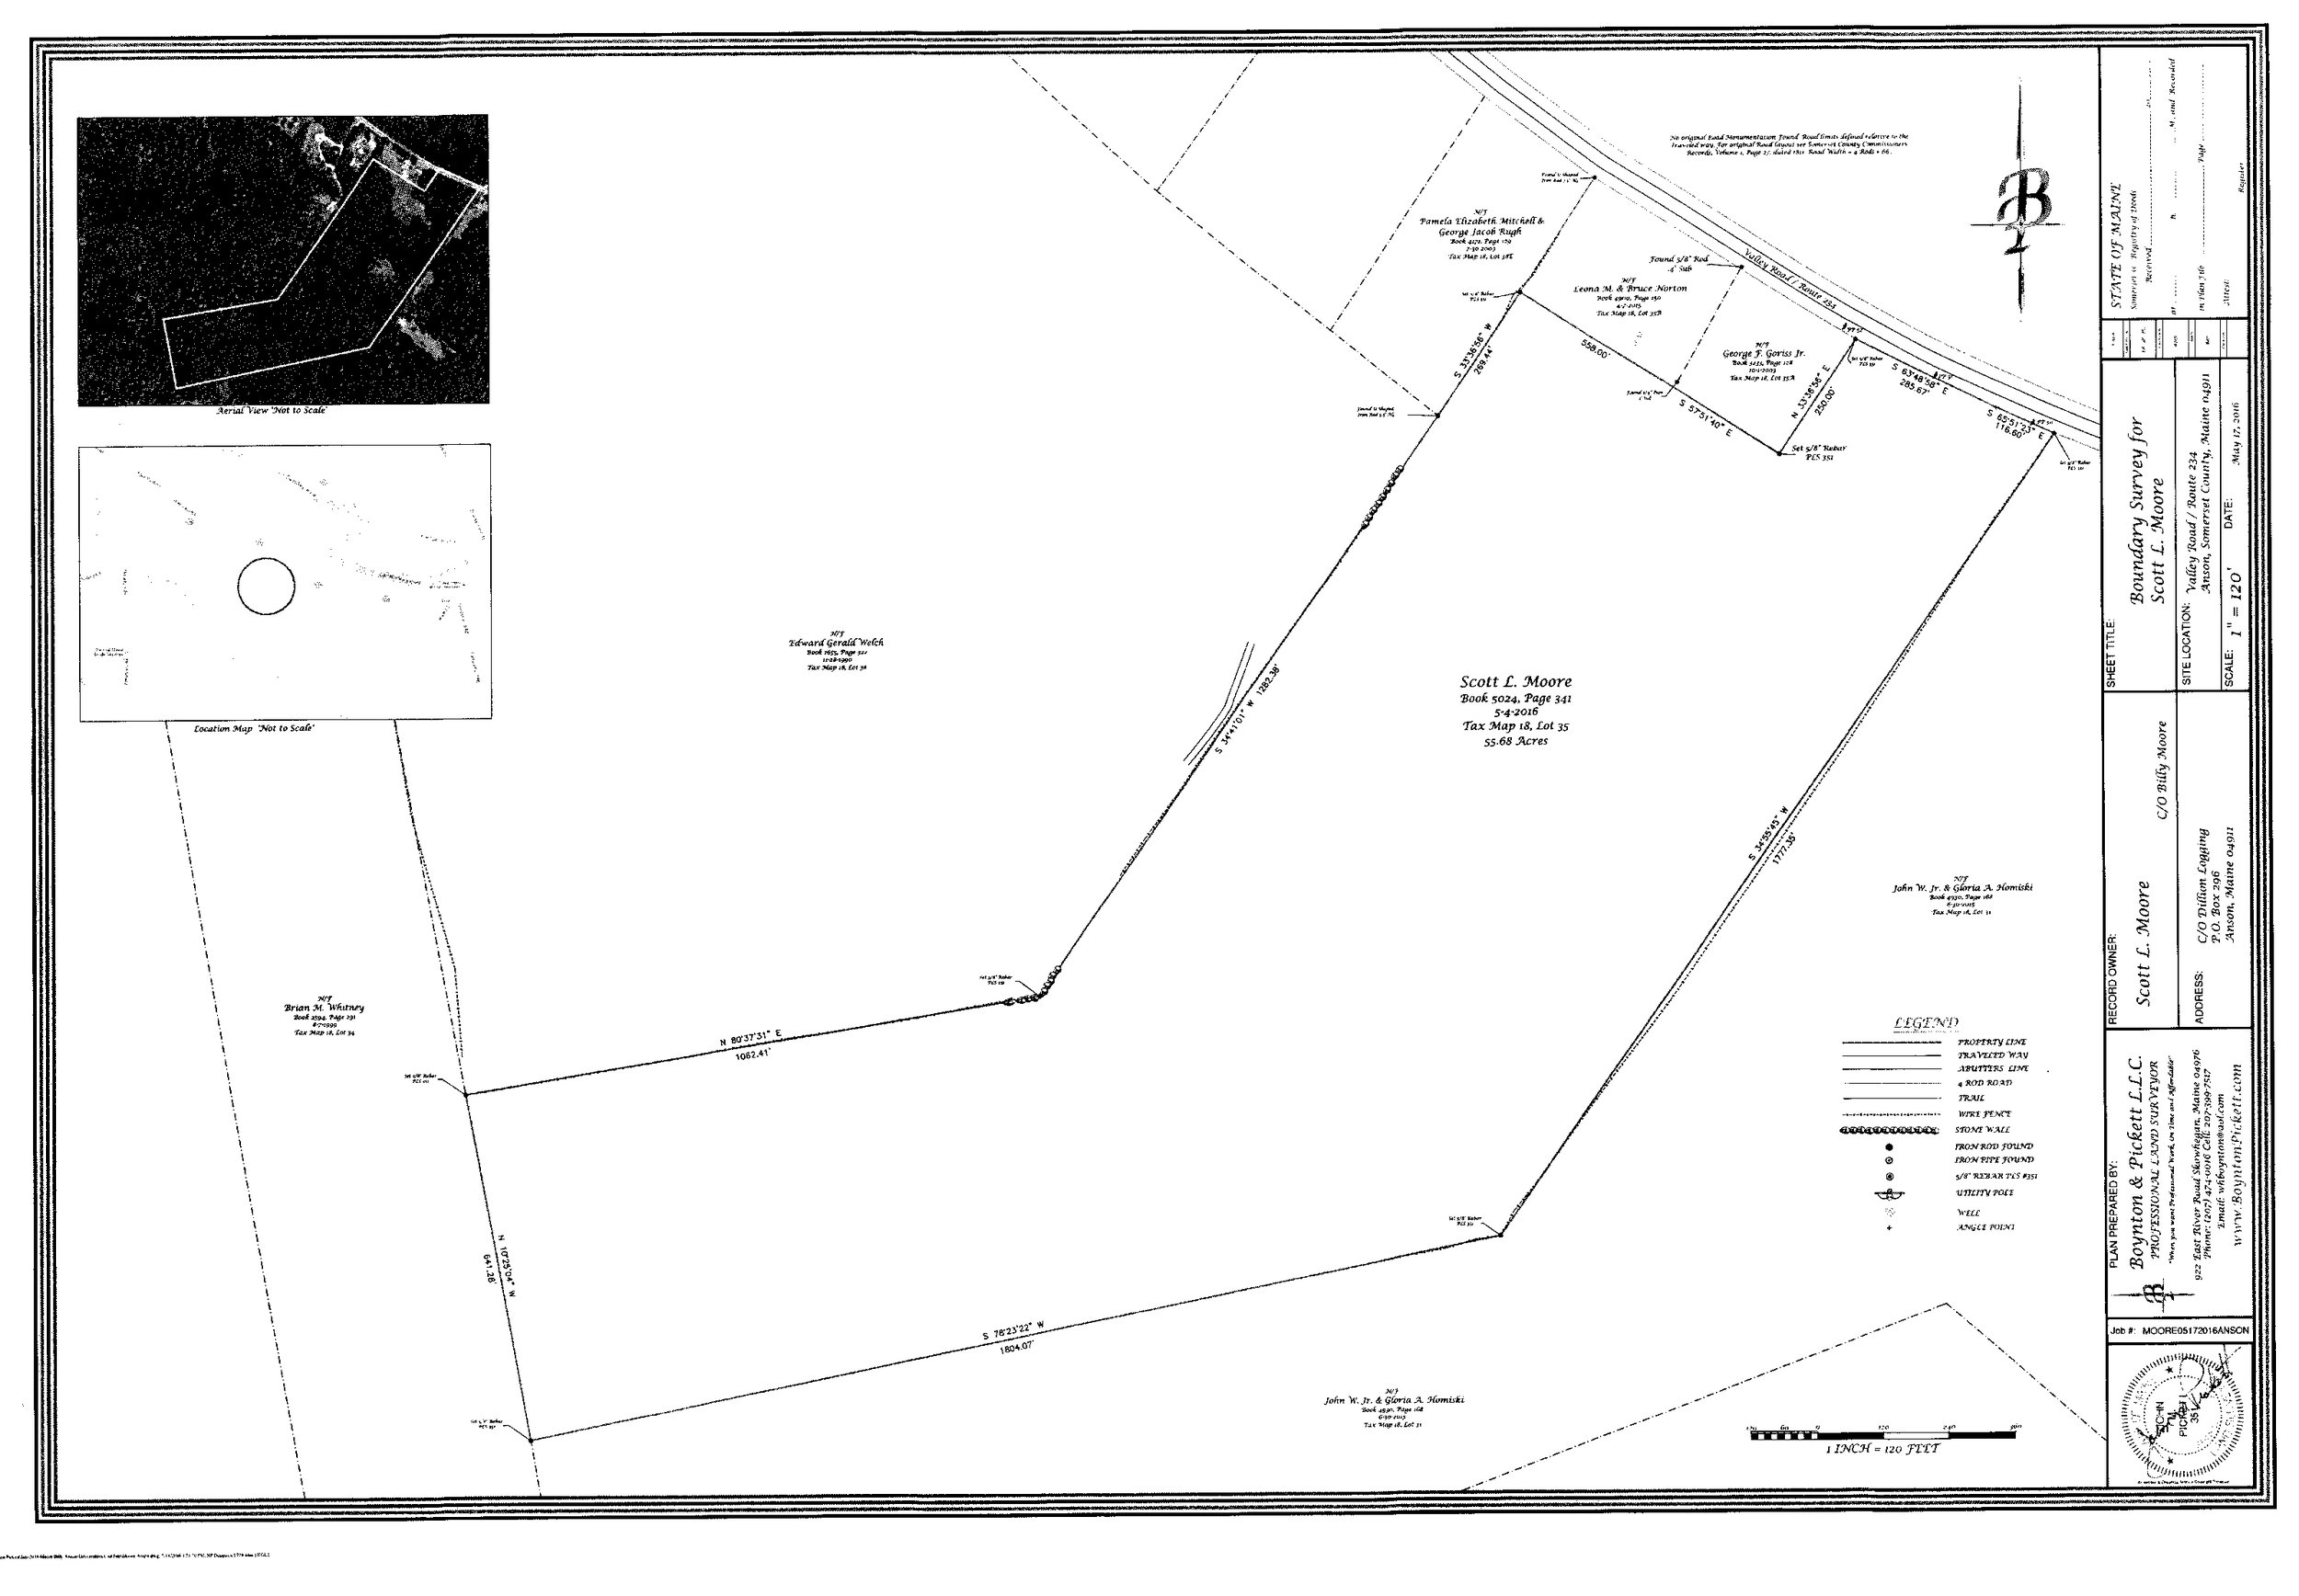 Anson - Click Here to View The PDF MapClick Here To Download The Google Earth Link